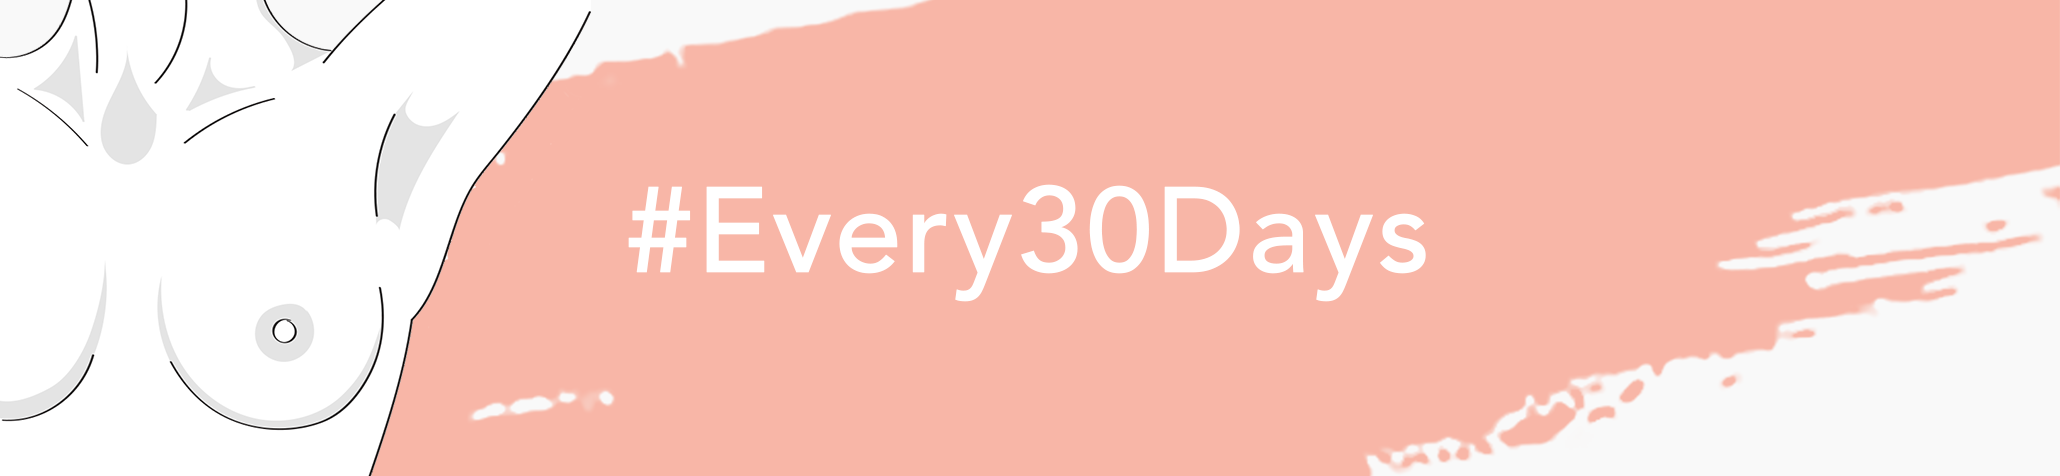 #Every30days